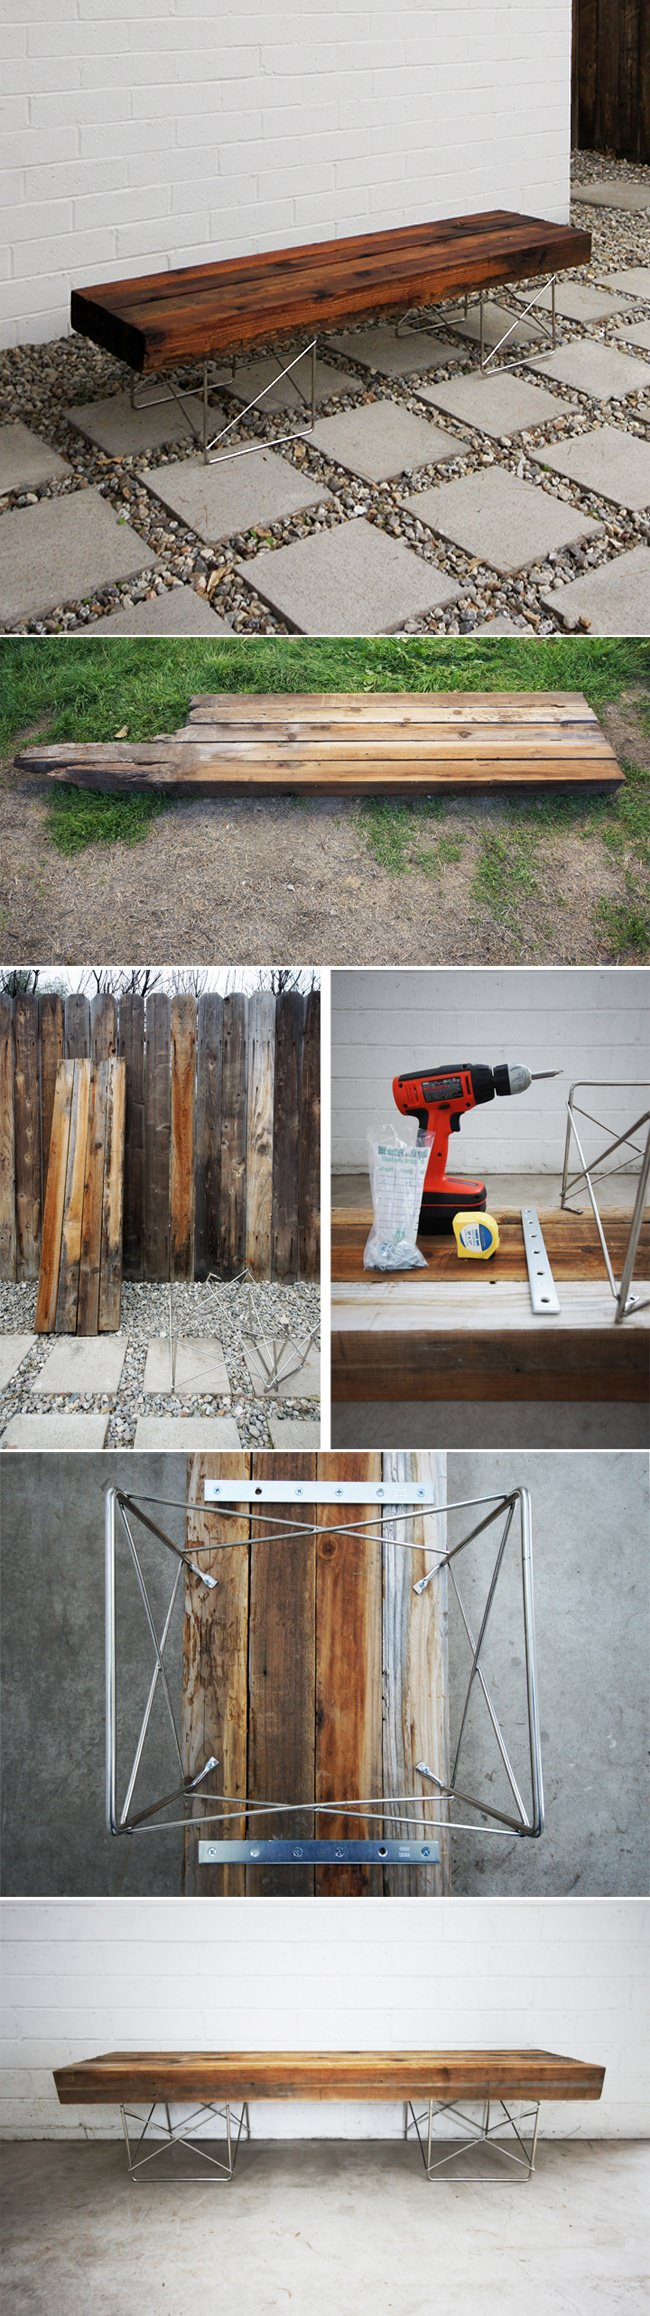 Echopaul official blog 11 super cool diy backyard for Super cool diy projects